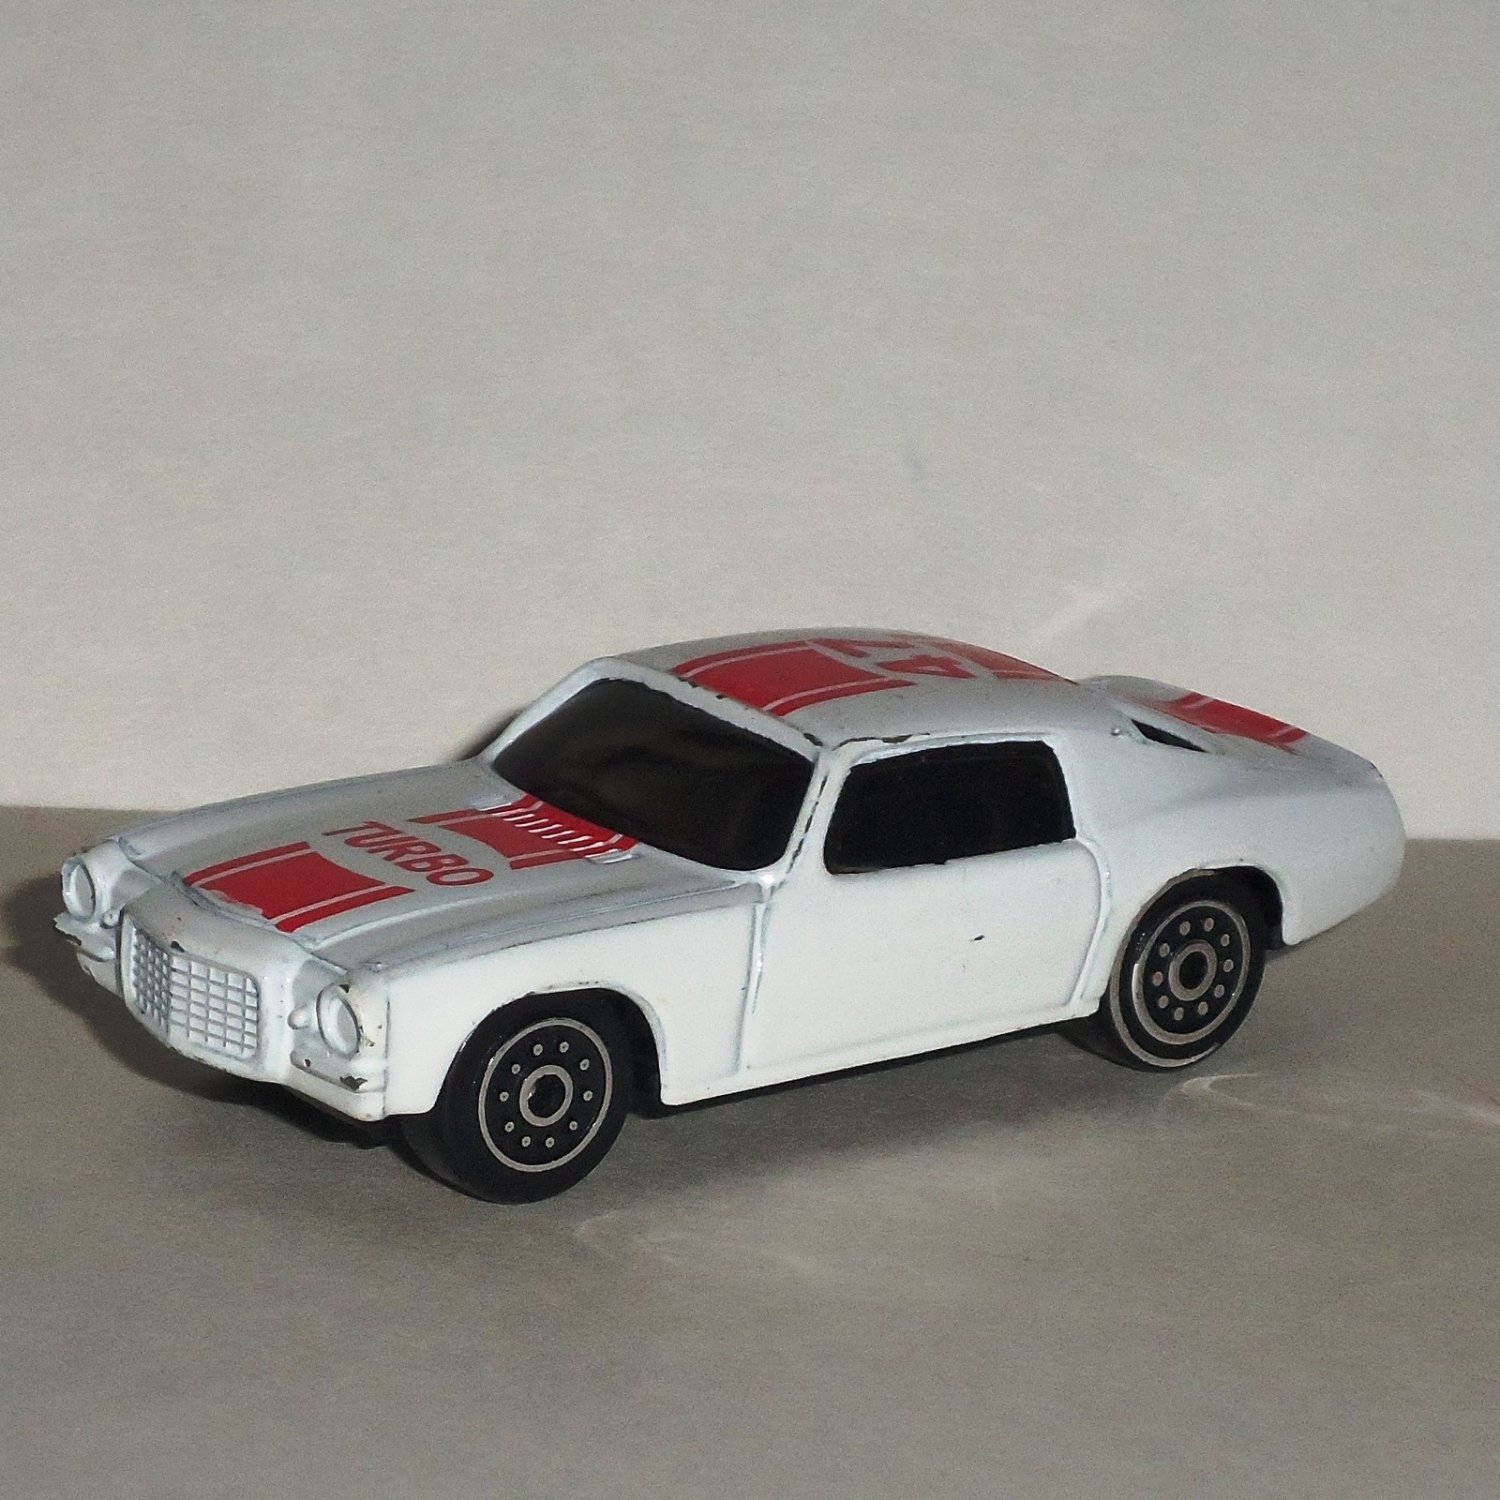 White & Red Turbo 47 Racing Diecast & Plastic Toy Car Loose Used